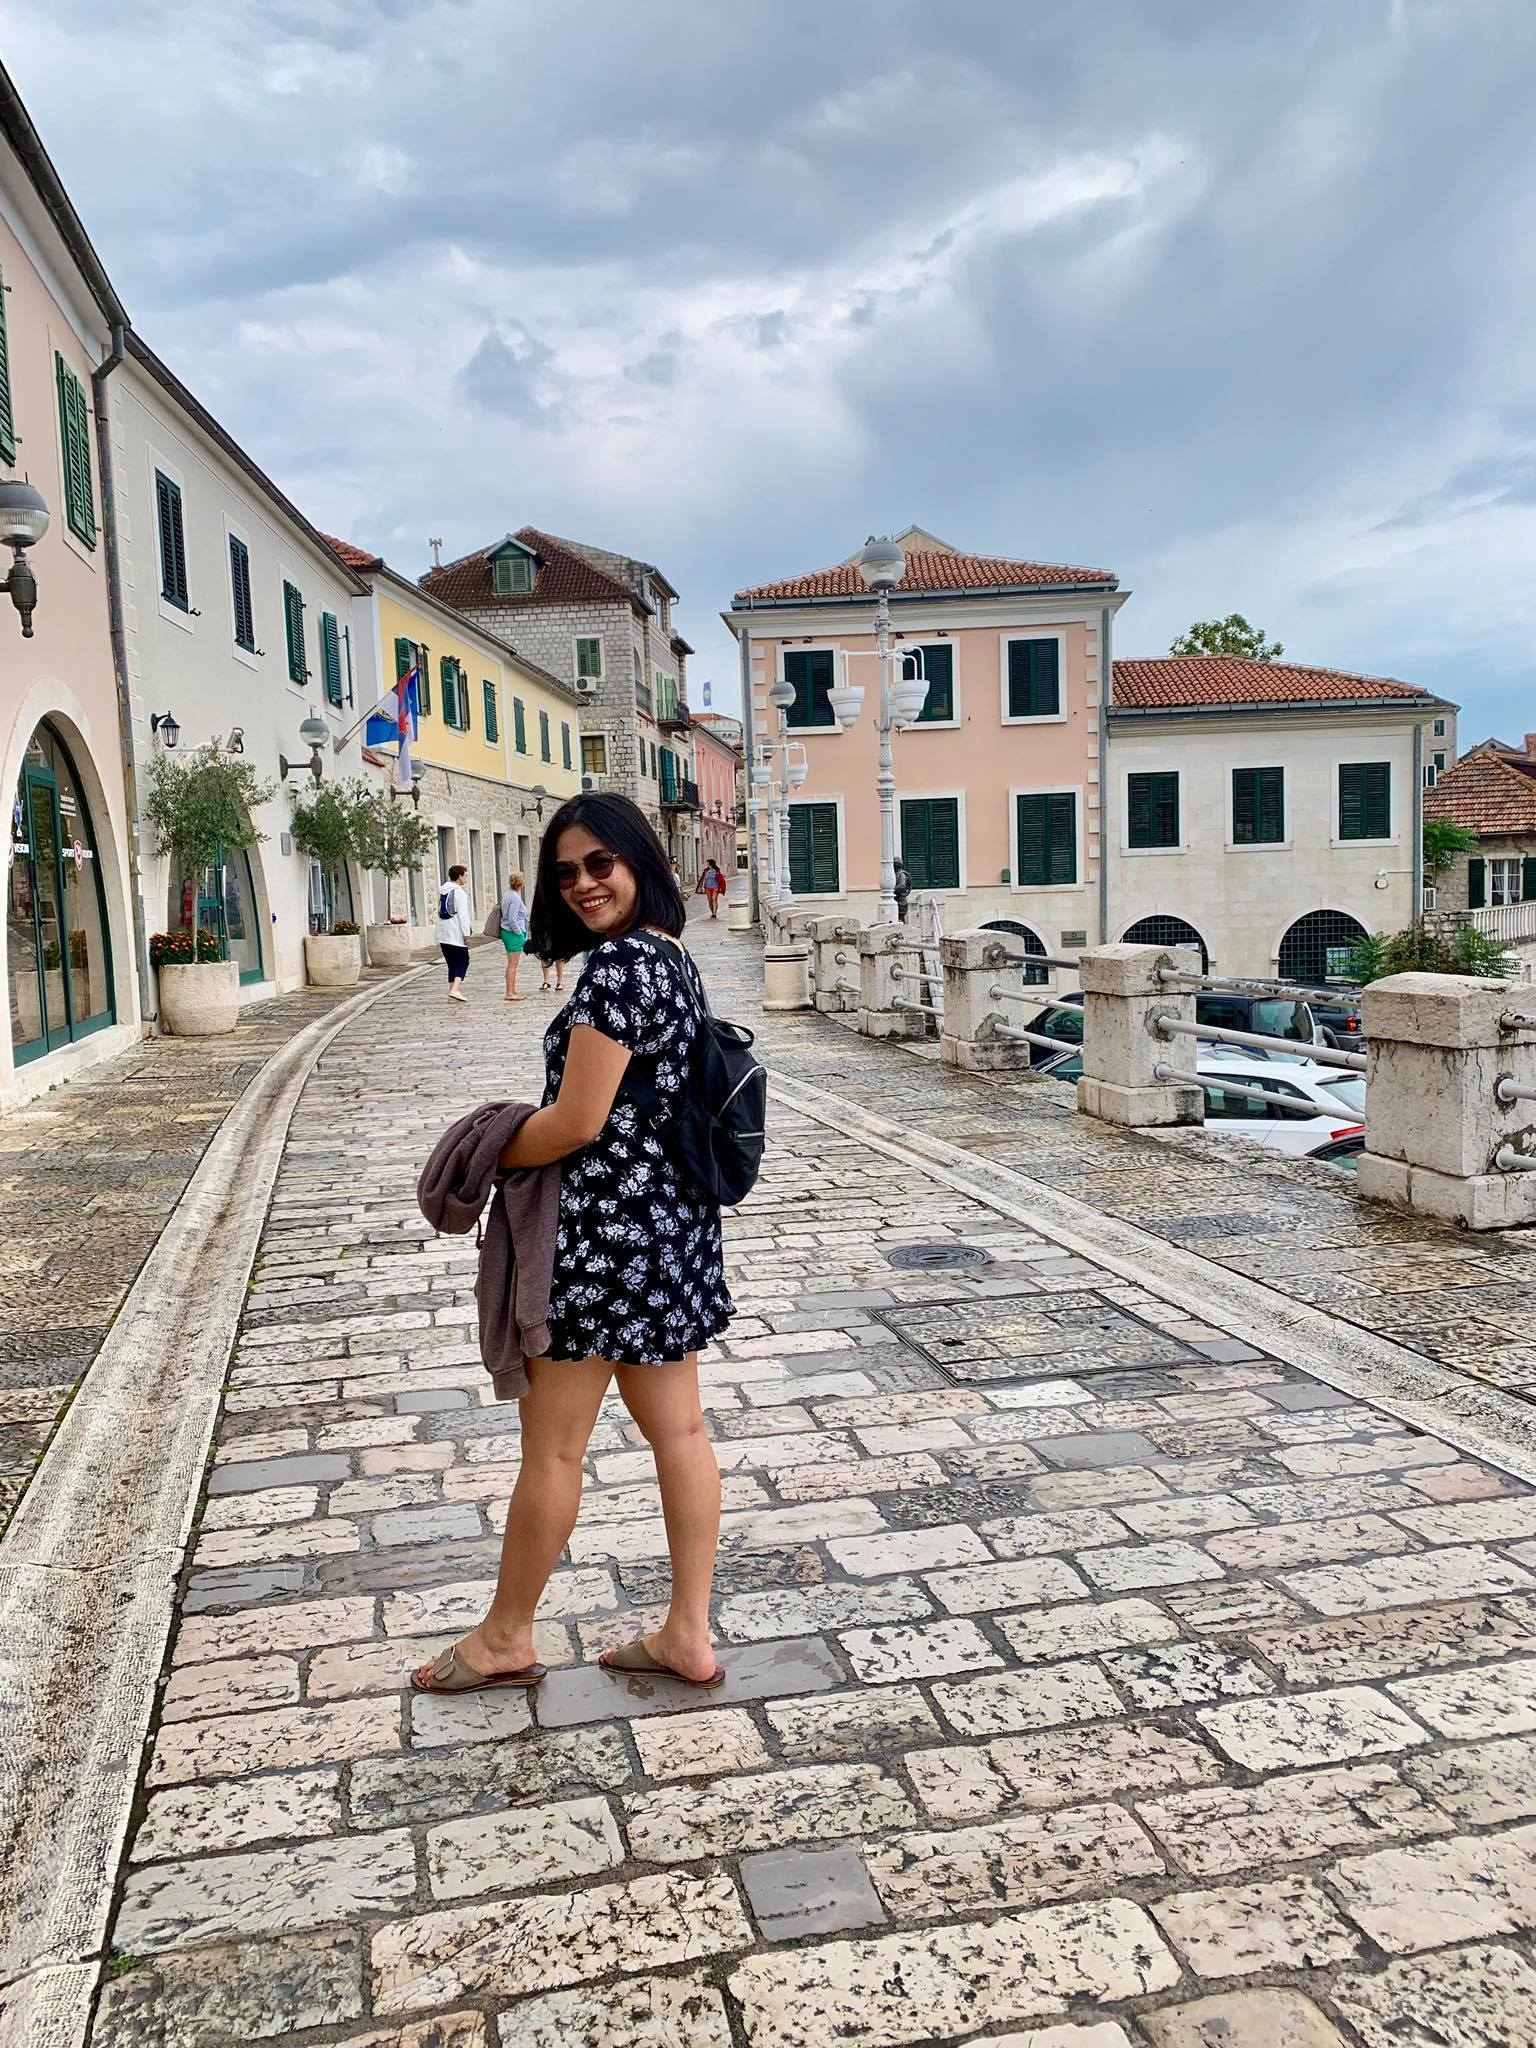 Things To Do in Herceg Novi, Montenegro